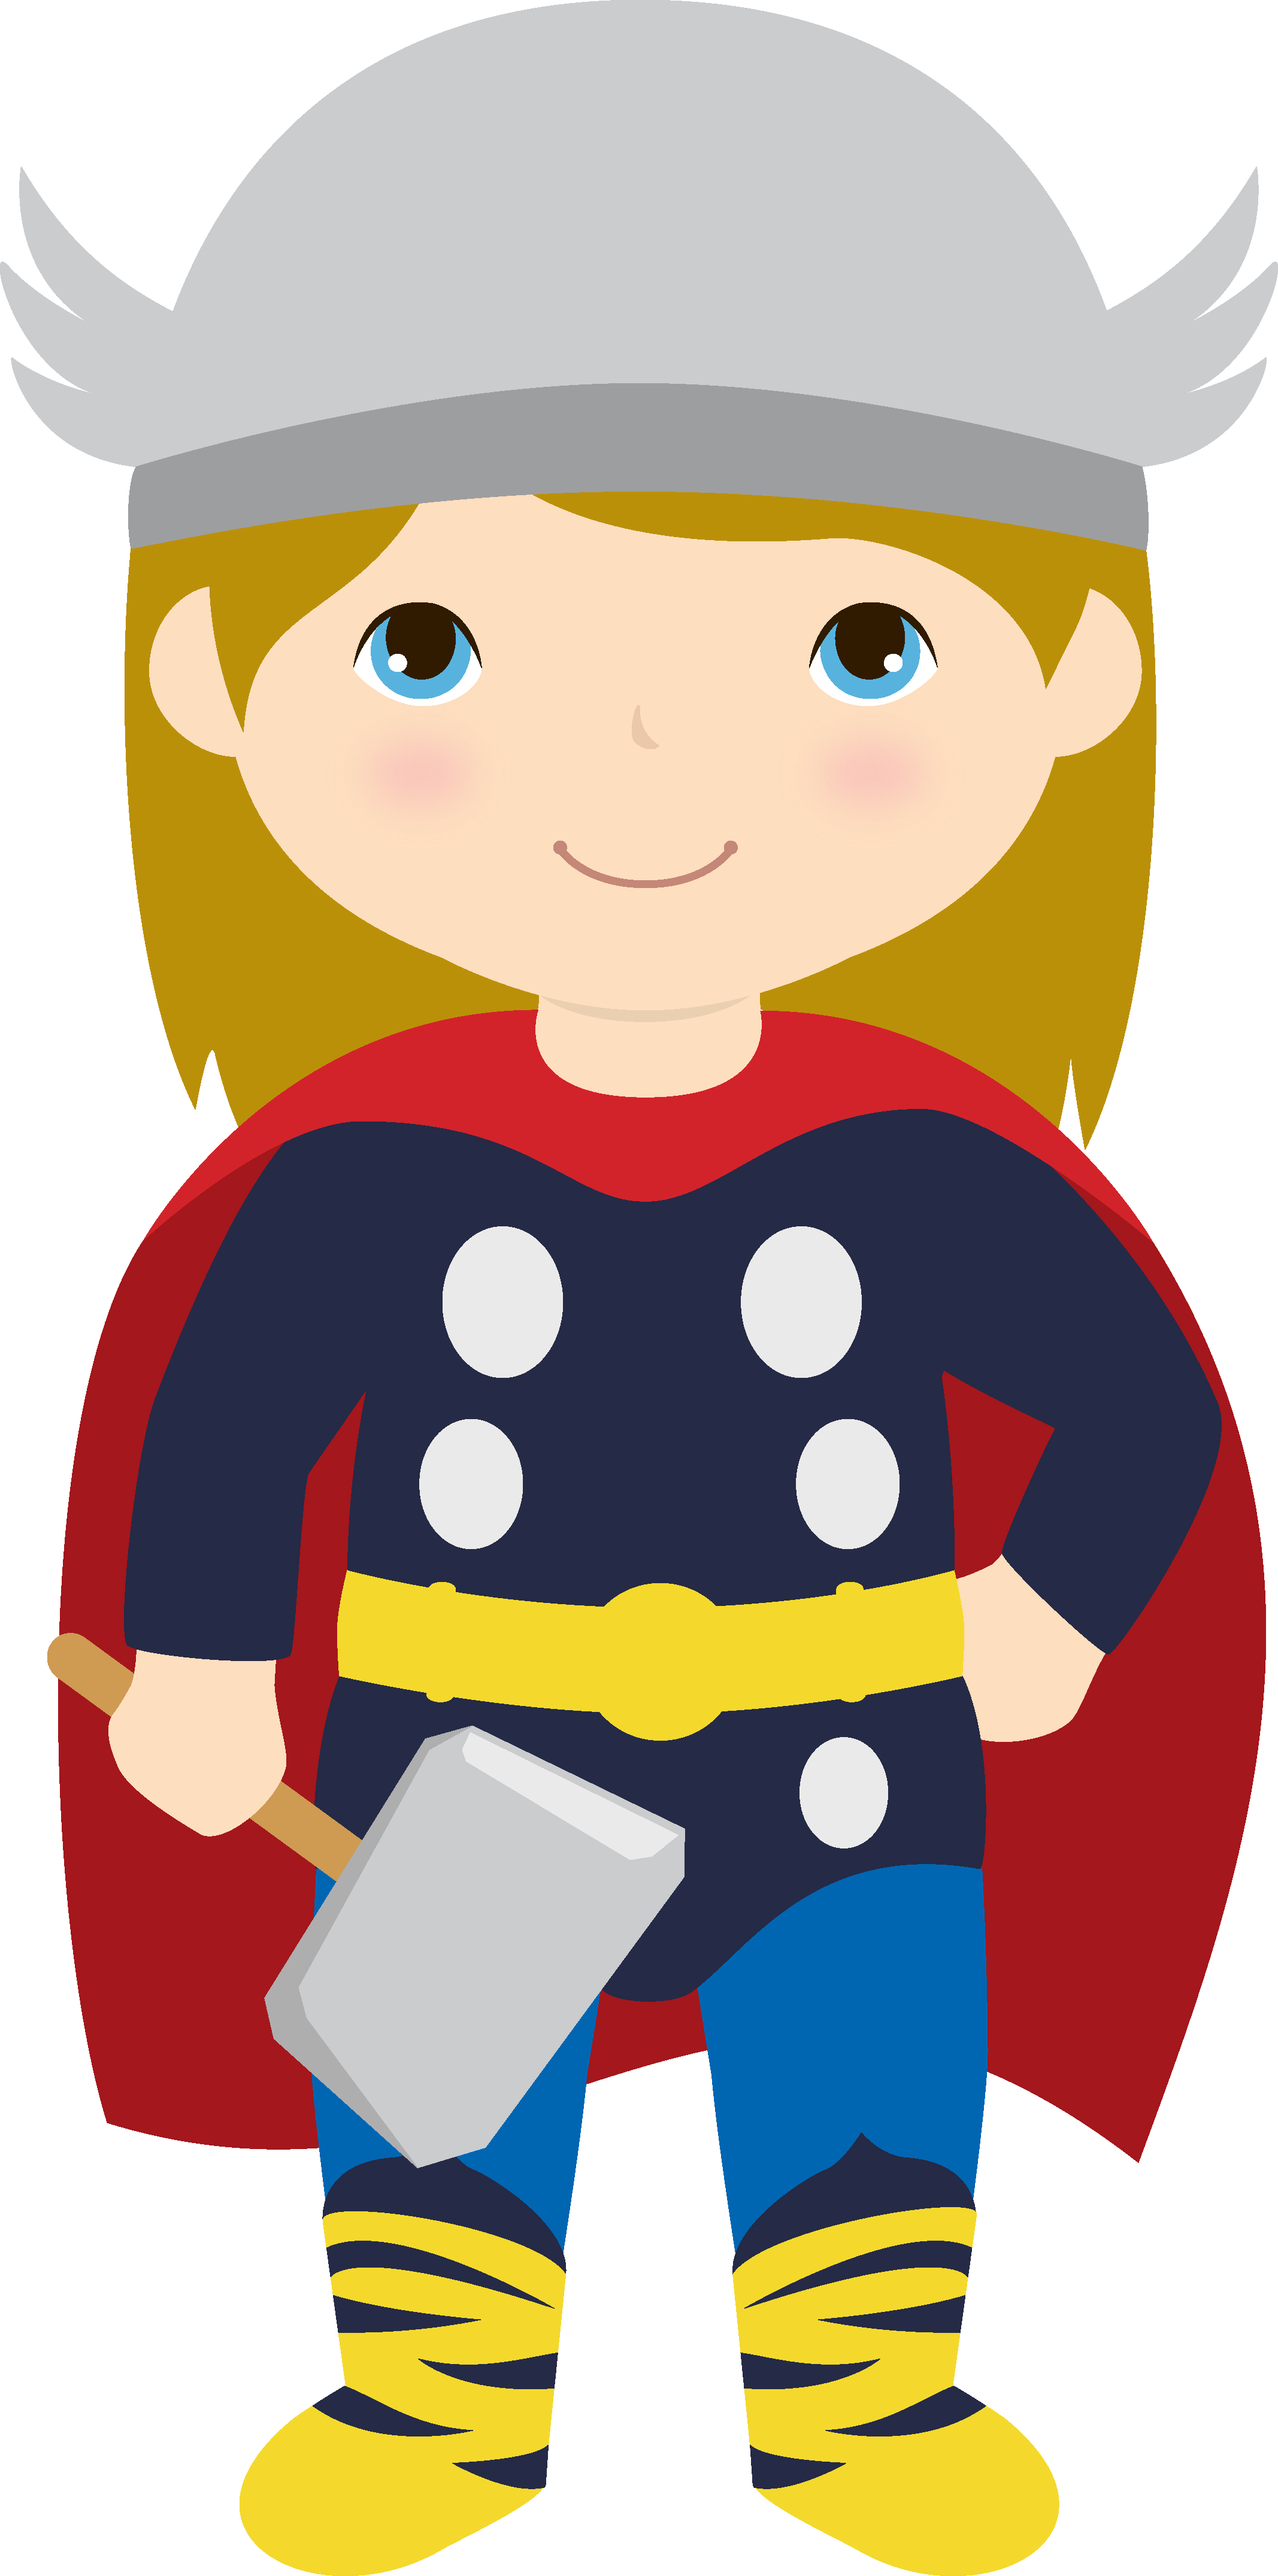 Pin by amy bailey on hero central vbs 2017 pinterest craft for Hero central vbs crafts